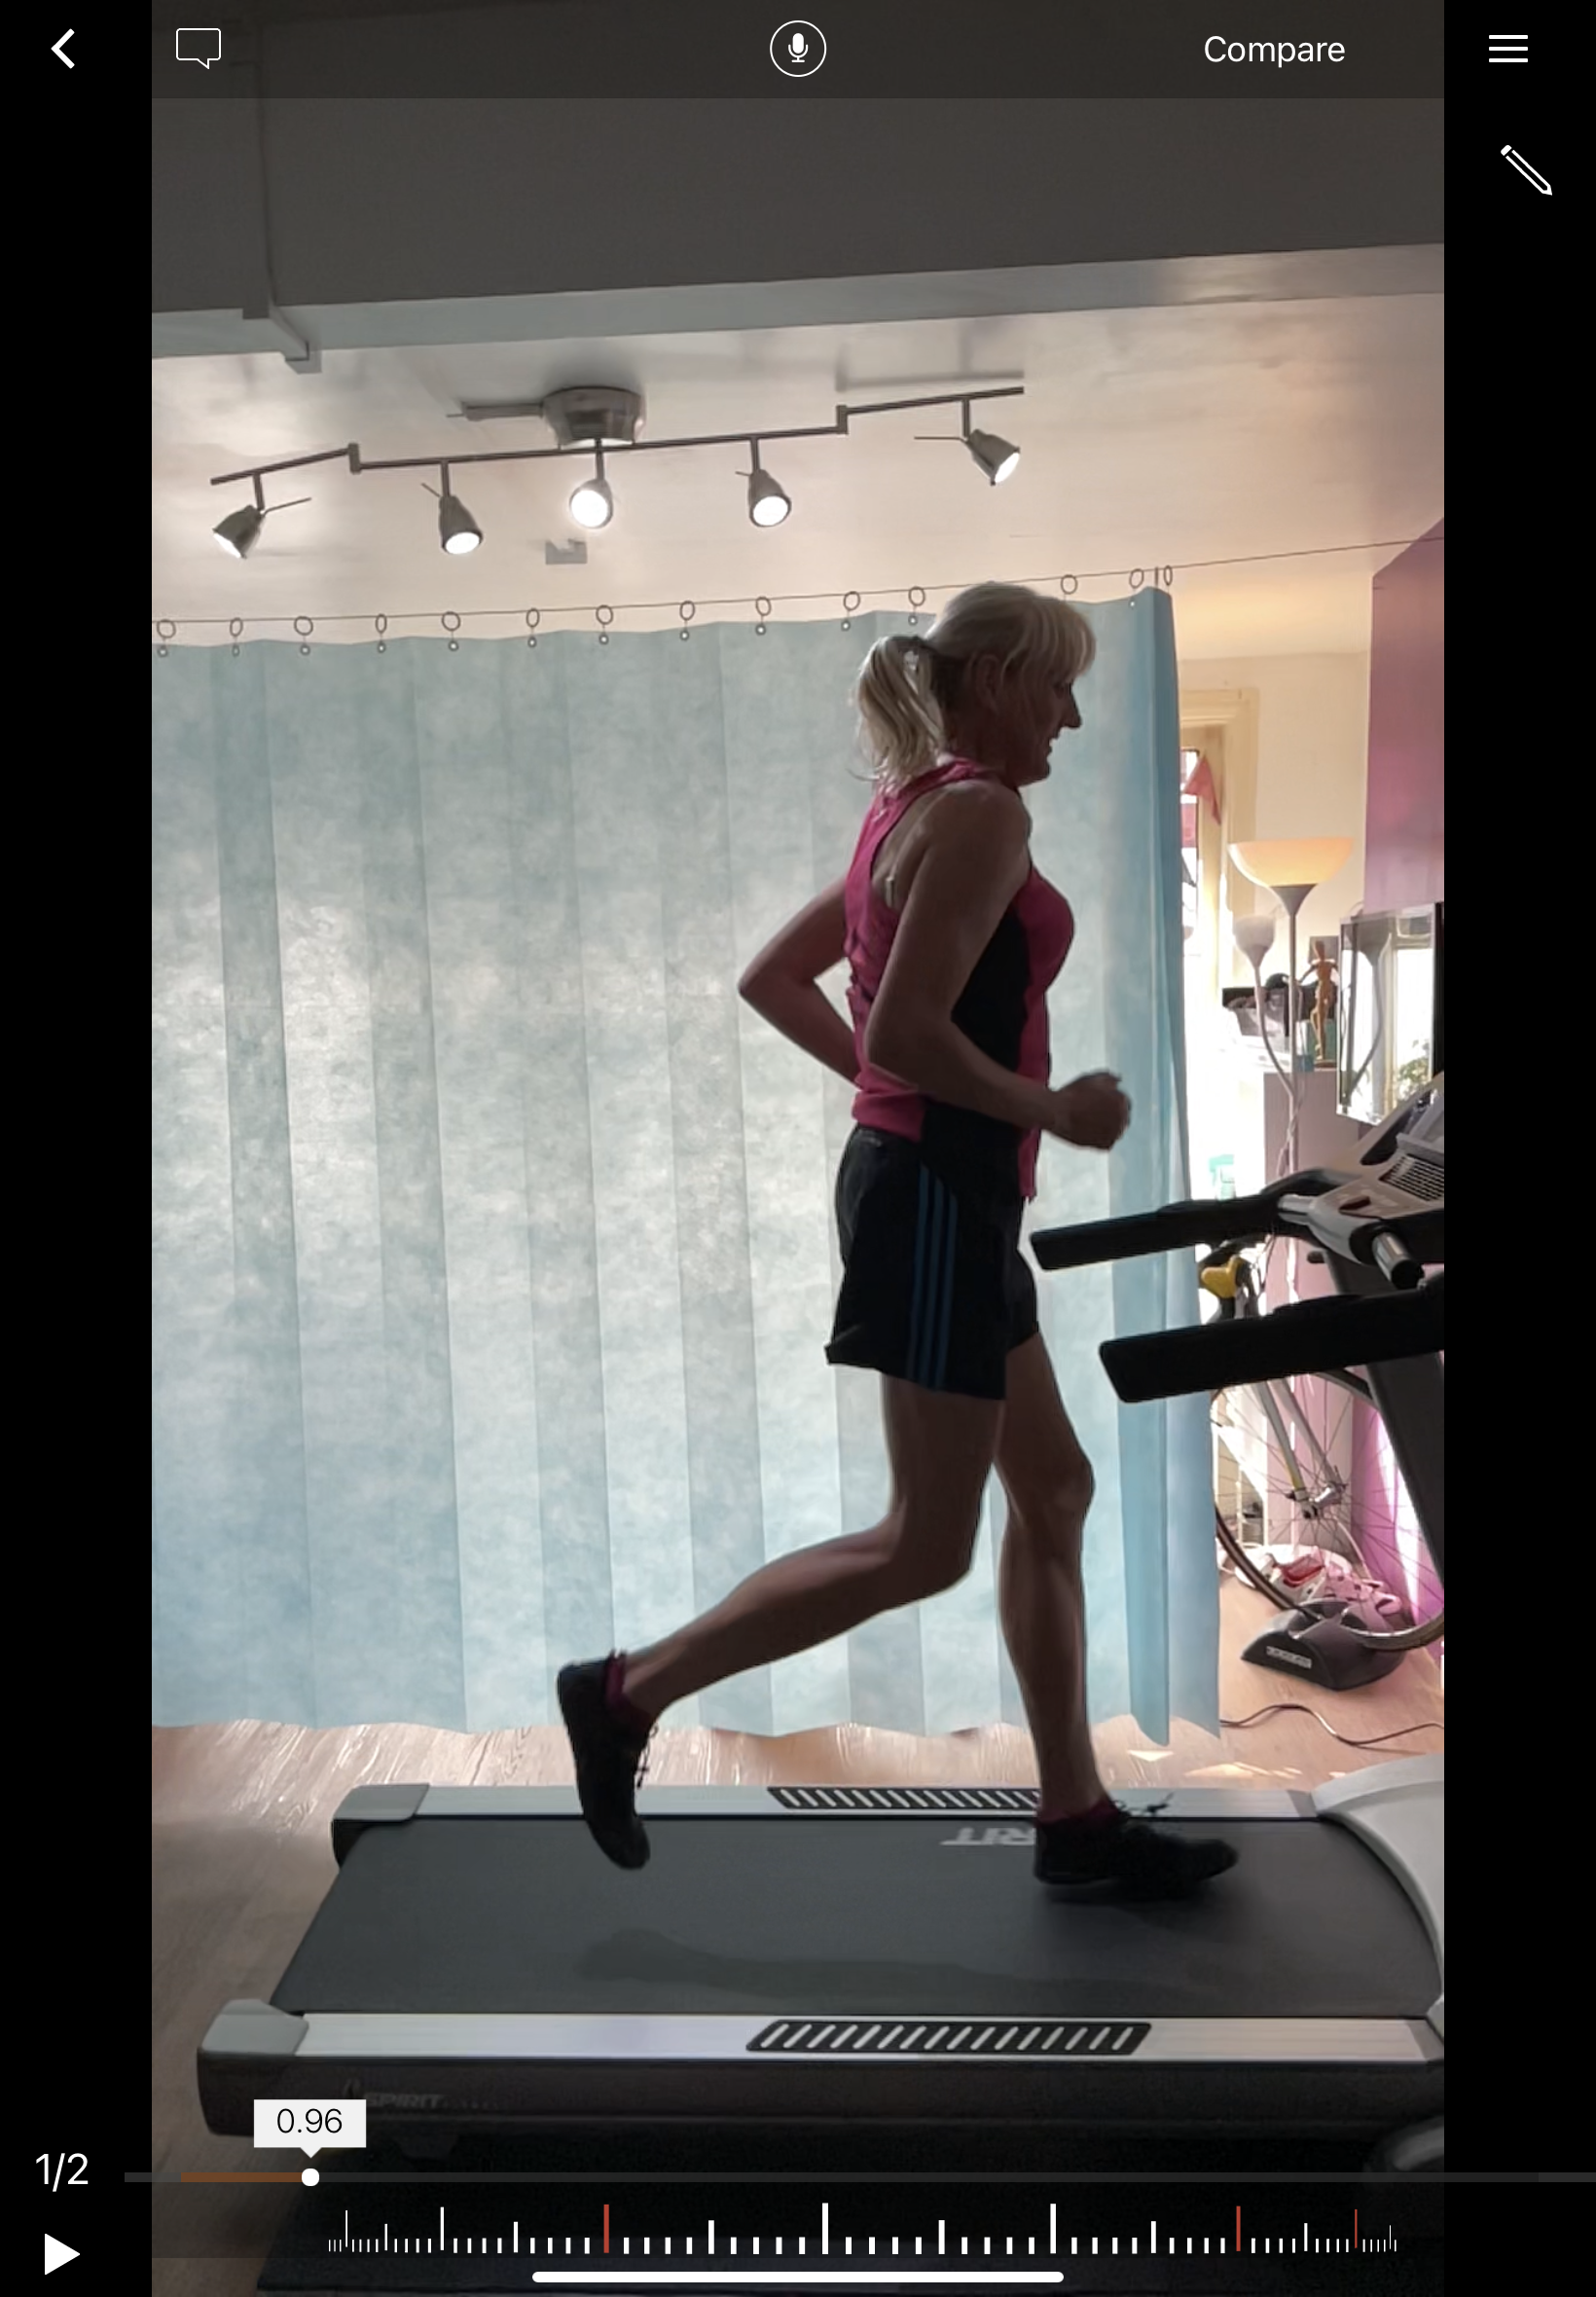 How to offload Tibialis Posterior when running